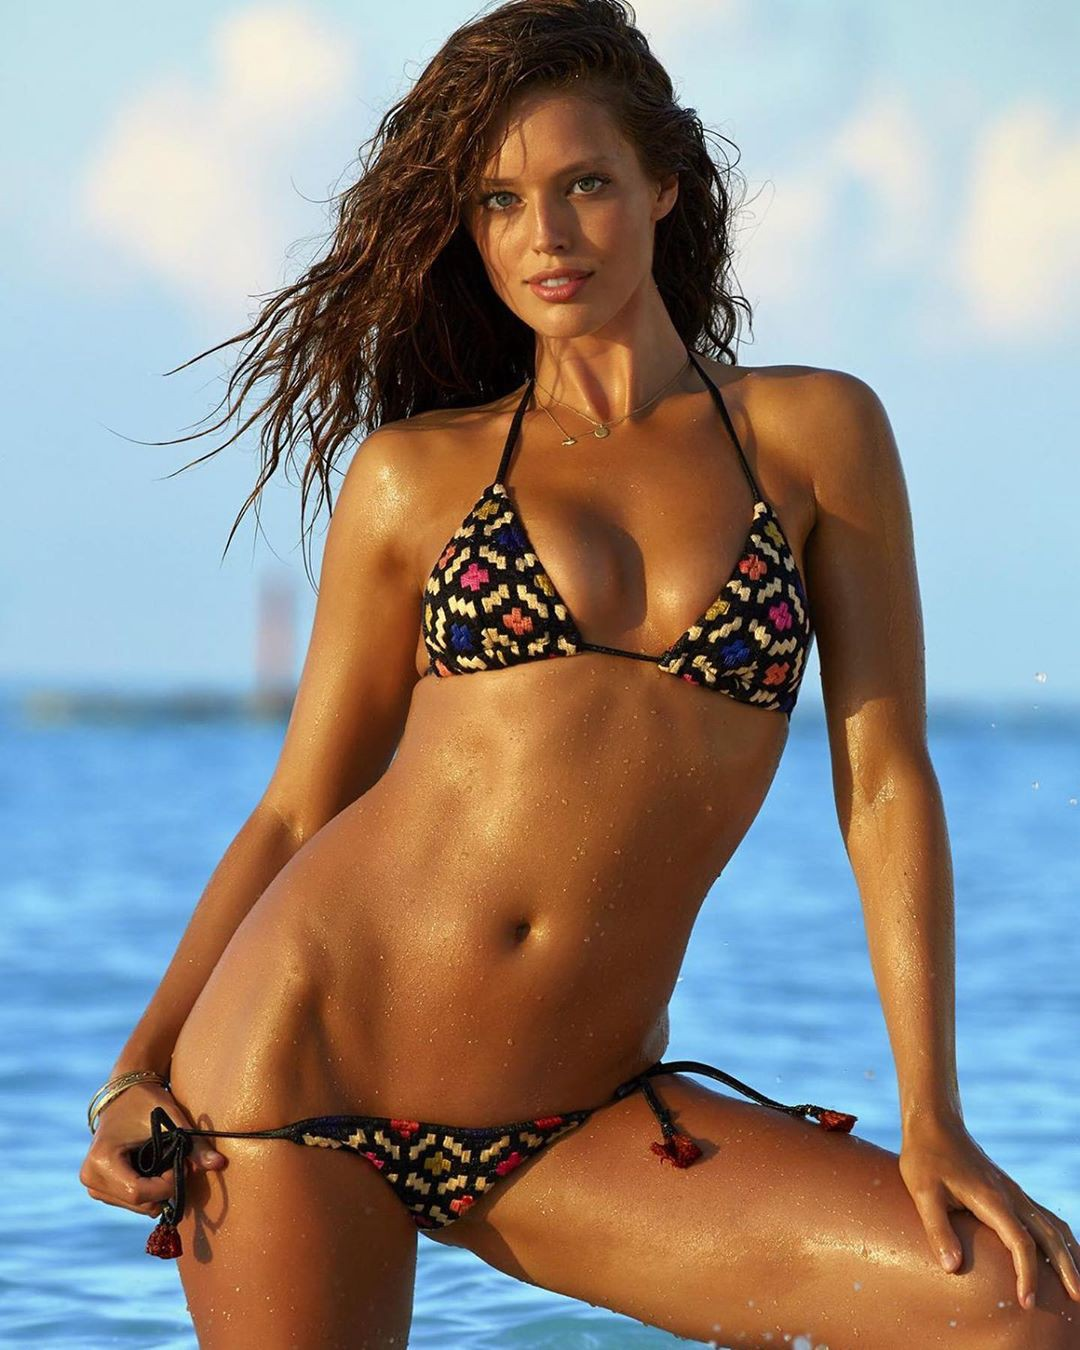 Emily DiDonato lingerie, bikini swimsuit top, swimwear dress for girls